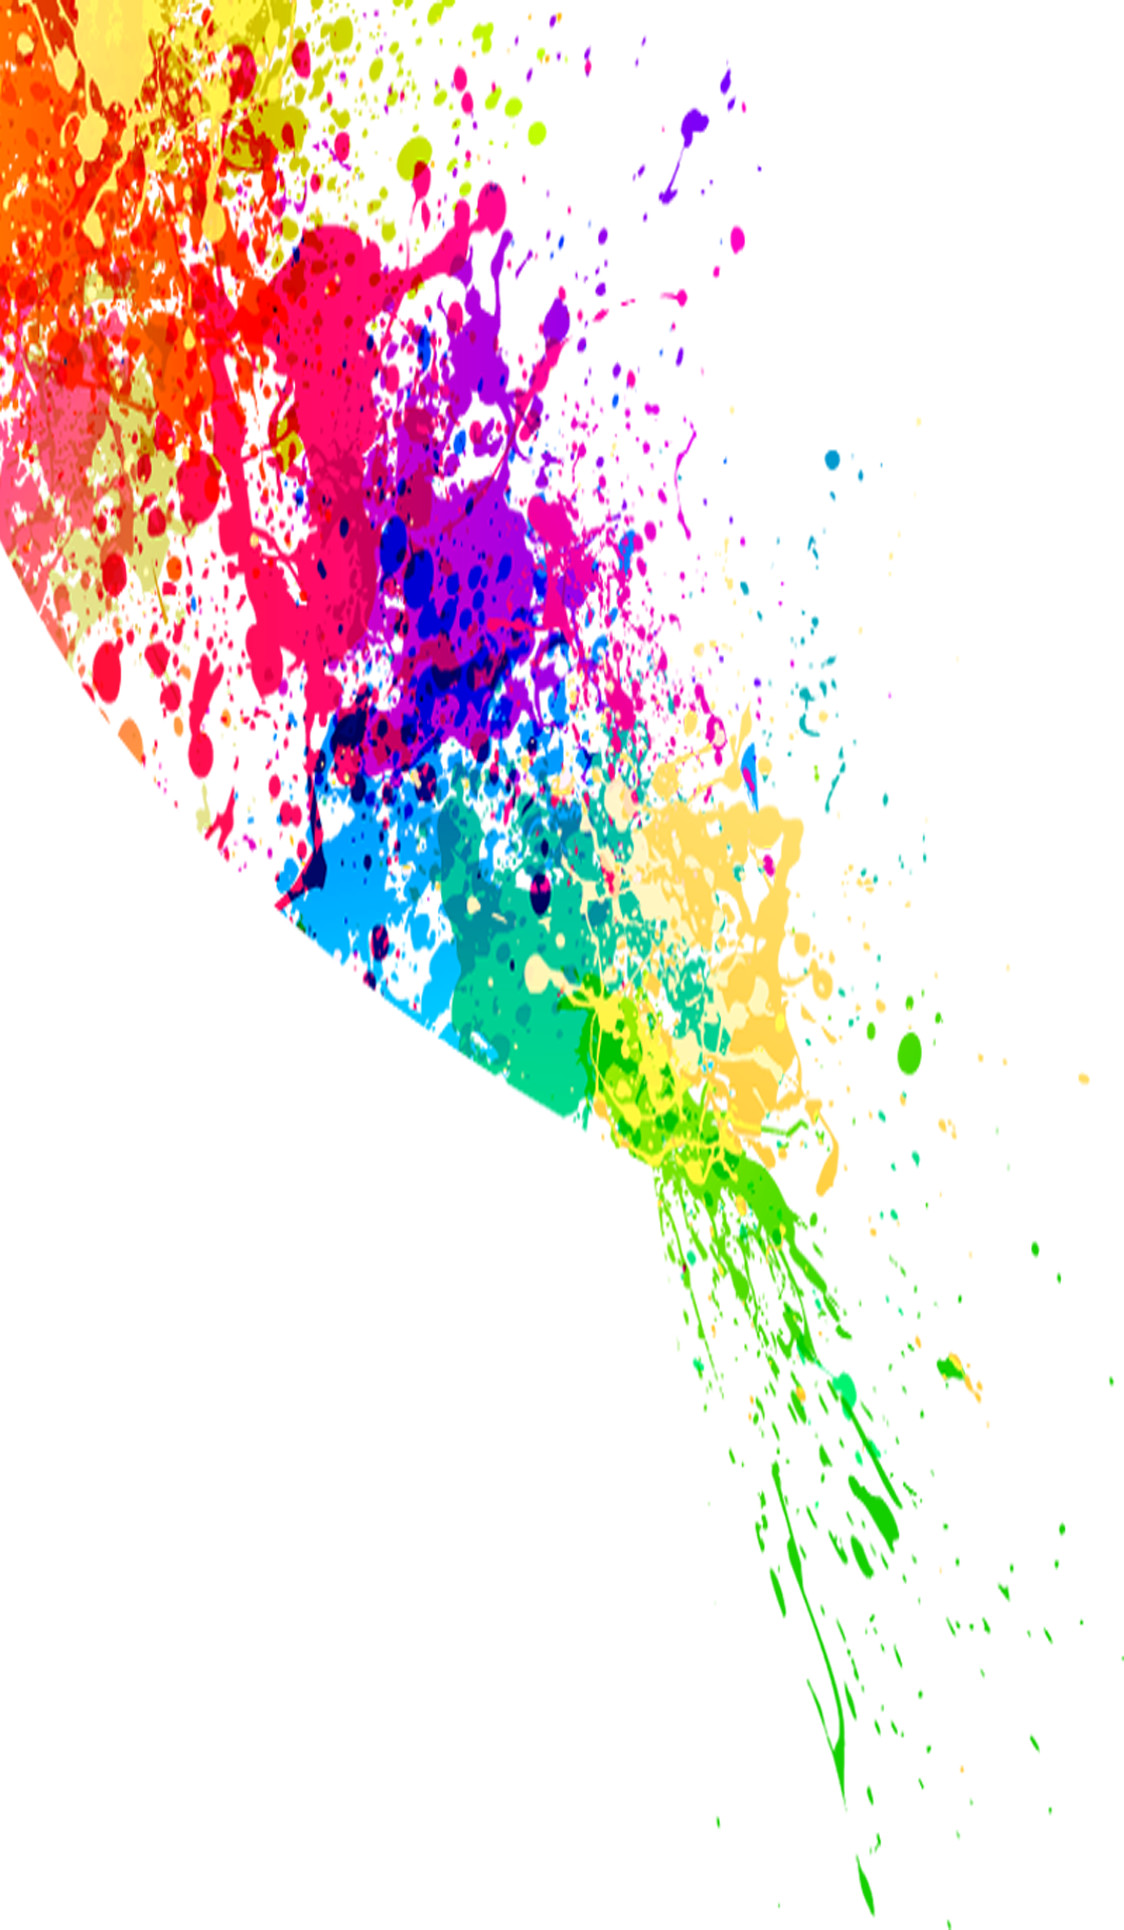 Colorful Paint Splatter Png image #33324